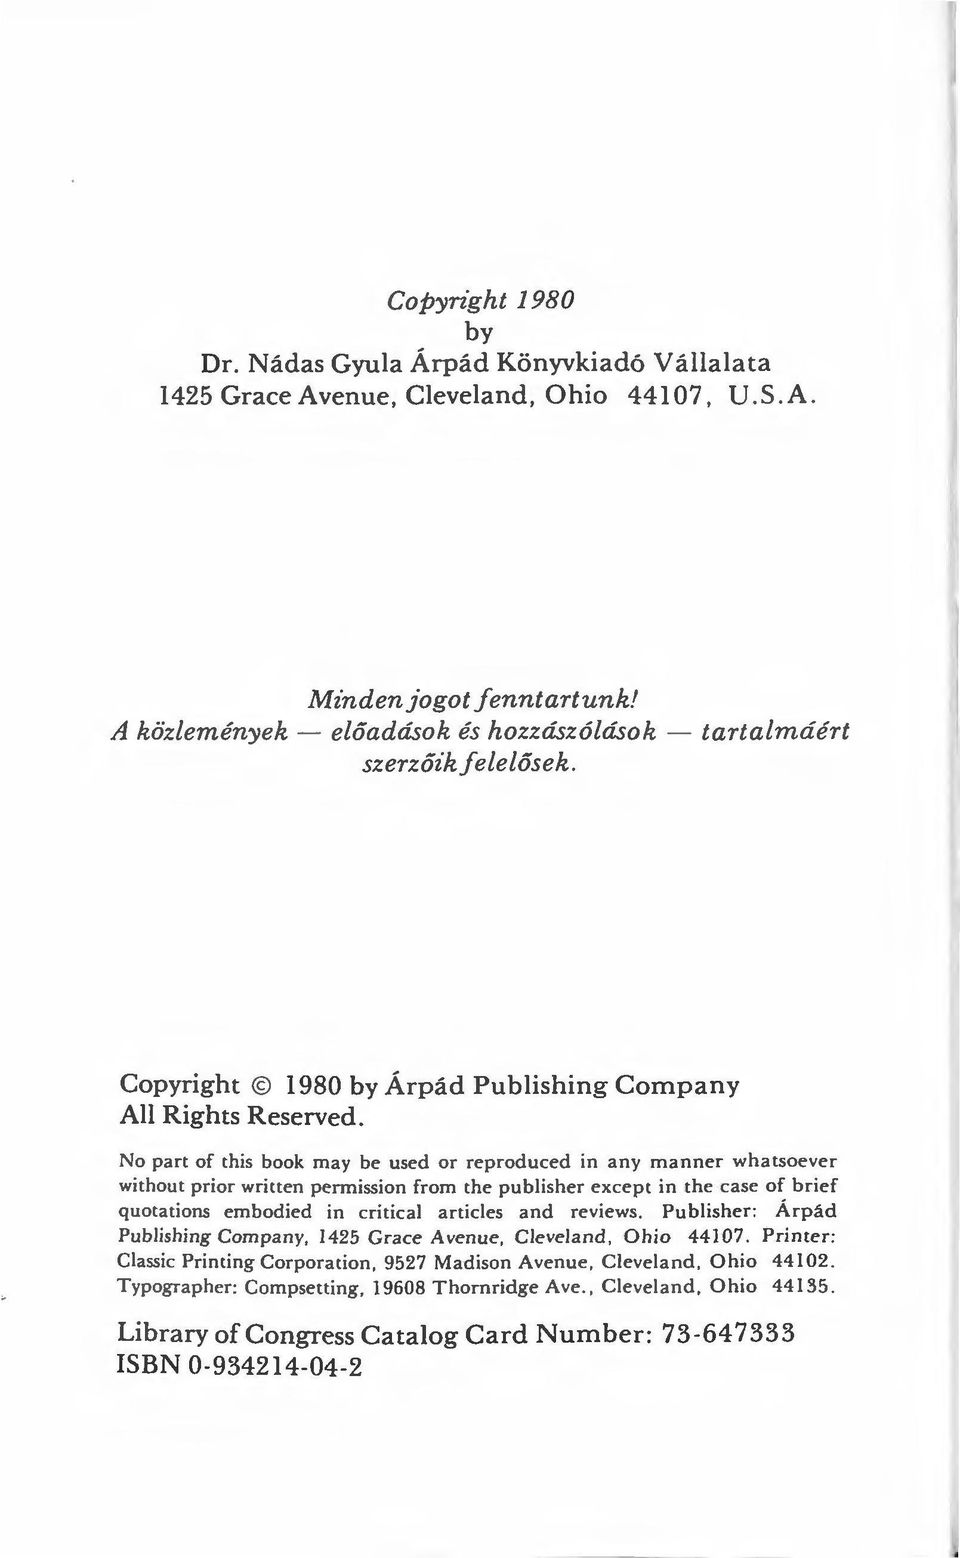 No part of this book may be used or reproduced in any manner whatsacver without prior written permission from the publisher except in the case of brief quotations embodied in eritical articles and